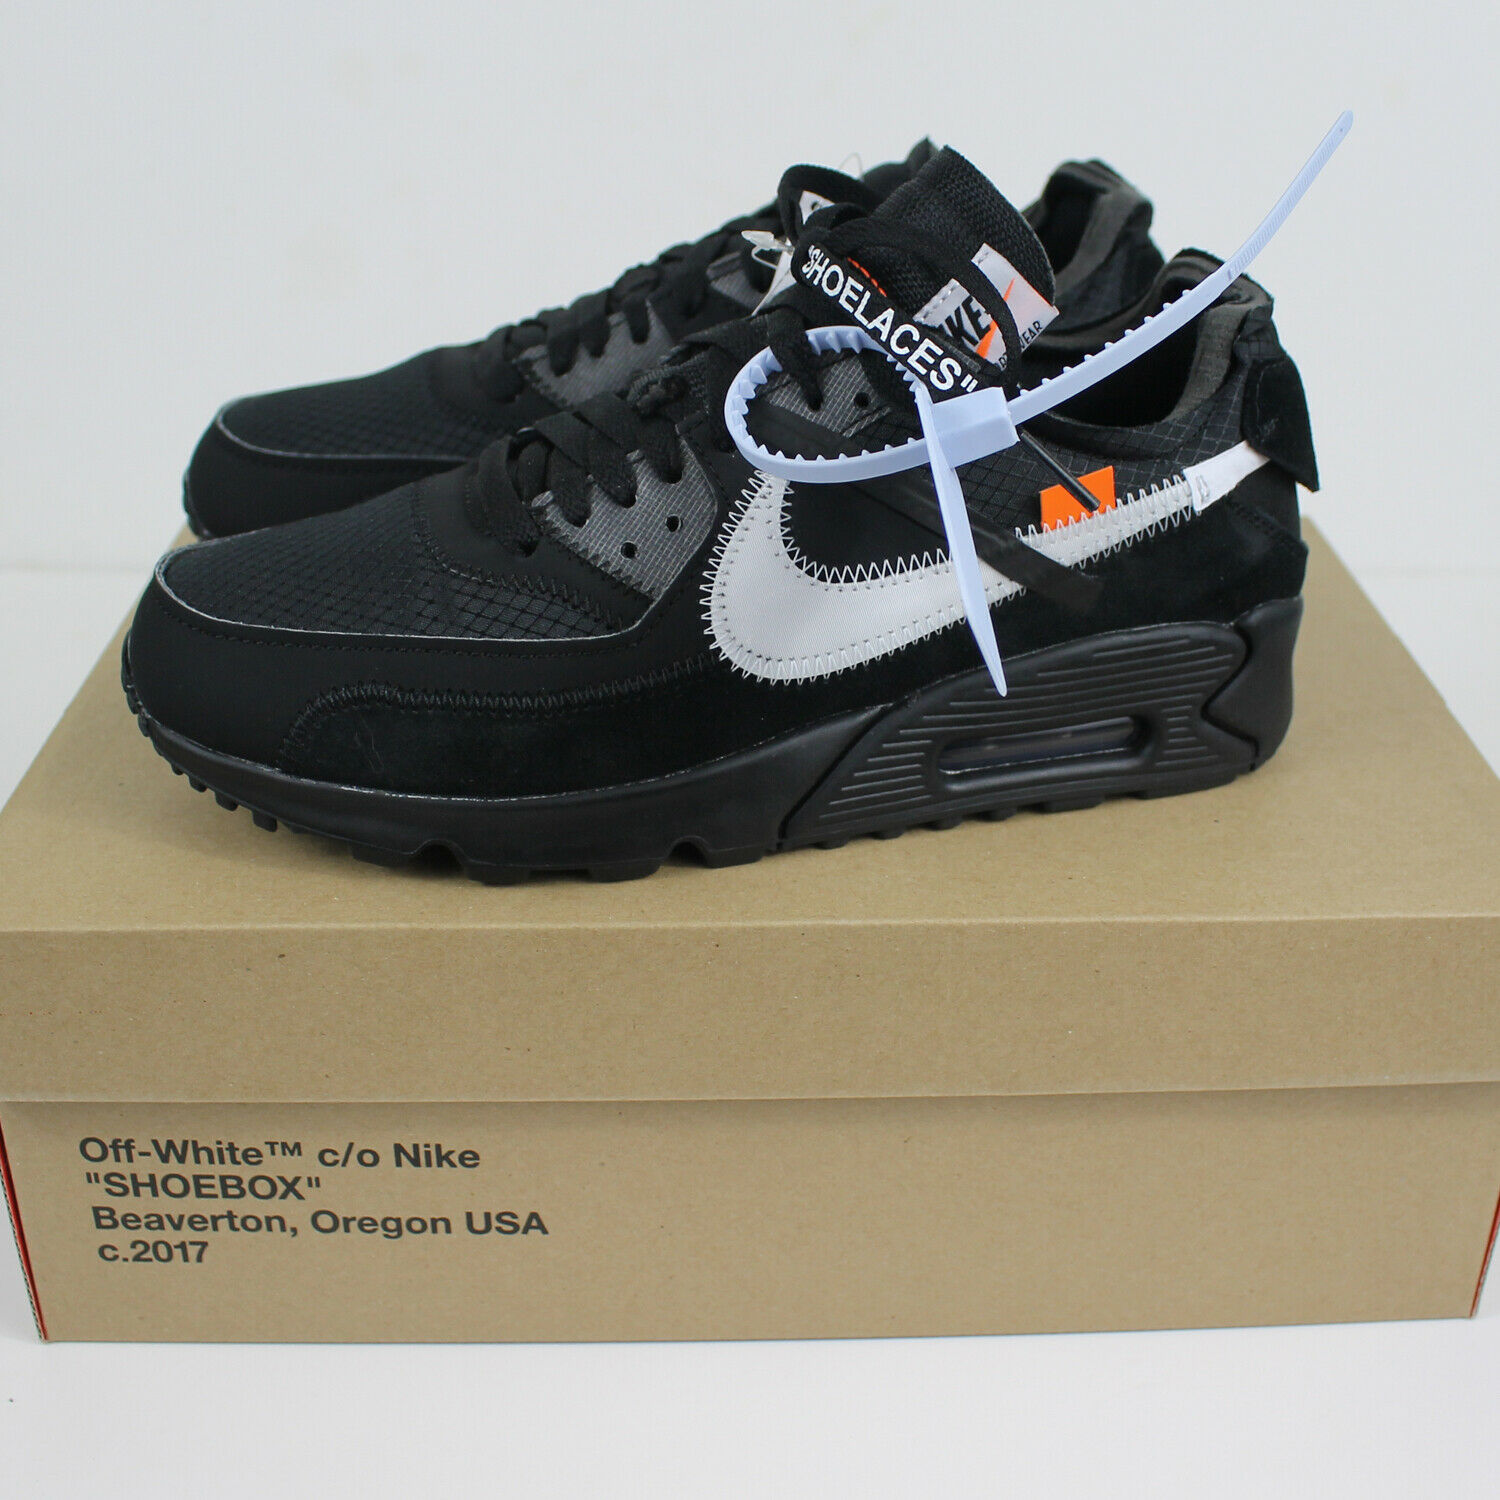 new style a8aad 3fc92 Nike Air Max 90 OFF-WHITE OFF-WHITE OFF-WHITE Black size 6.5